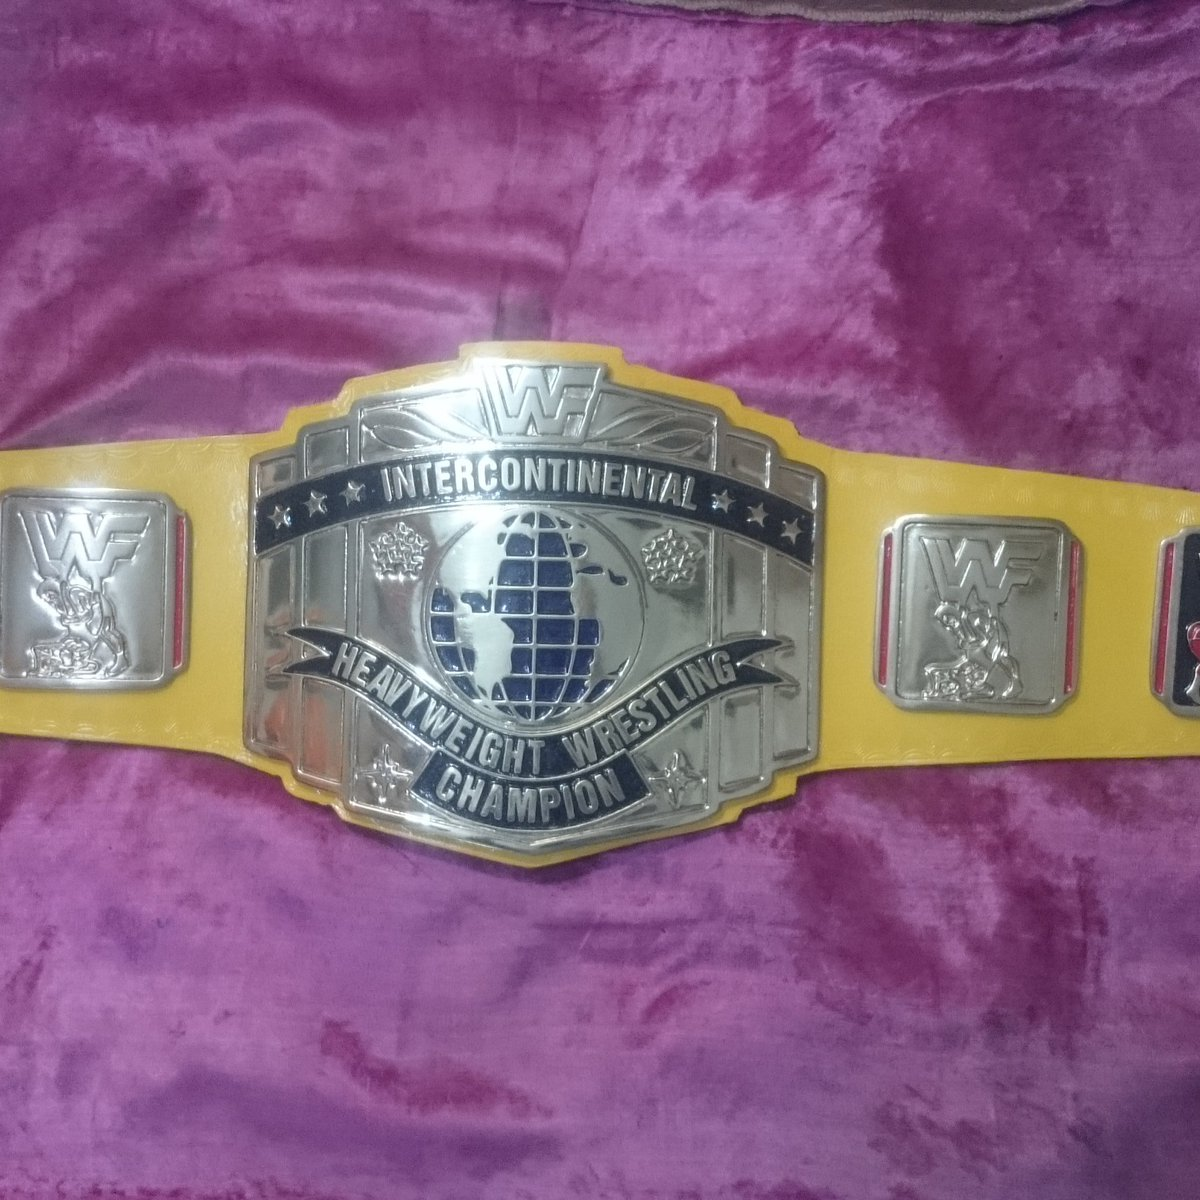 #WWF #Intercontinental #heavyweight #wrestling #championship #Title #belt for #sale  #4mmzinc #goldplated #Collectibles #oldschool For more details and picture dm us.pic.twitter.com/uQX1NtDP1J